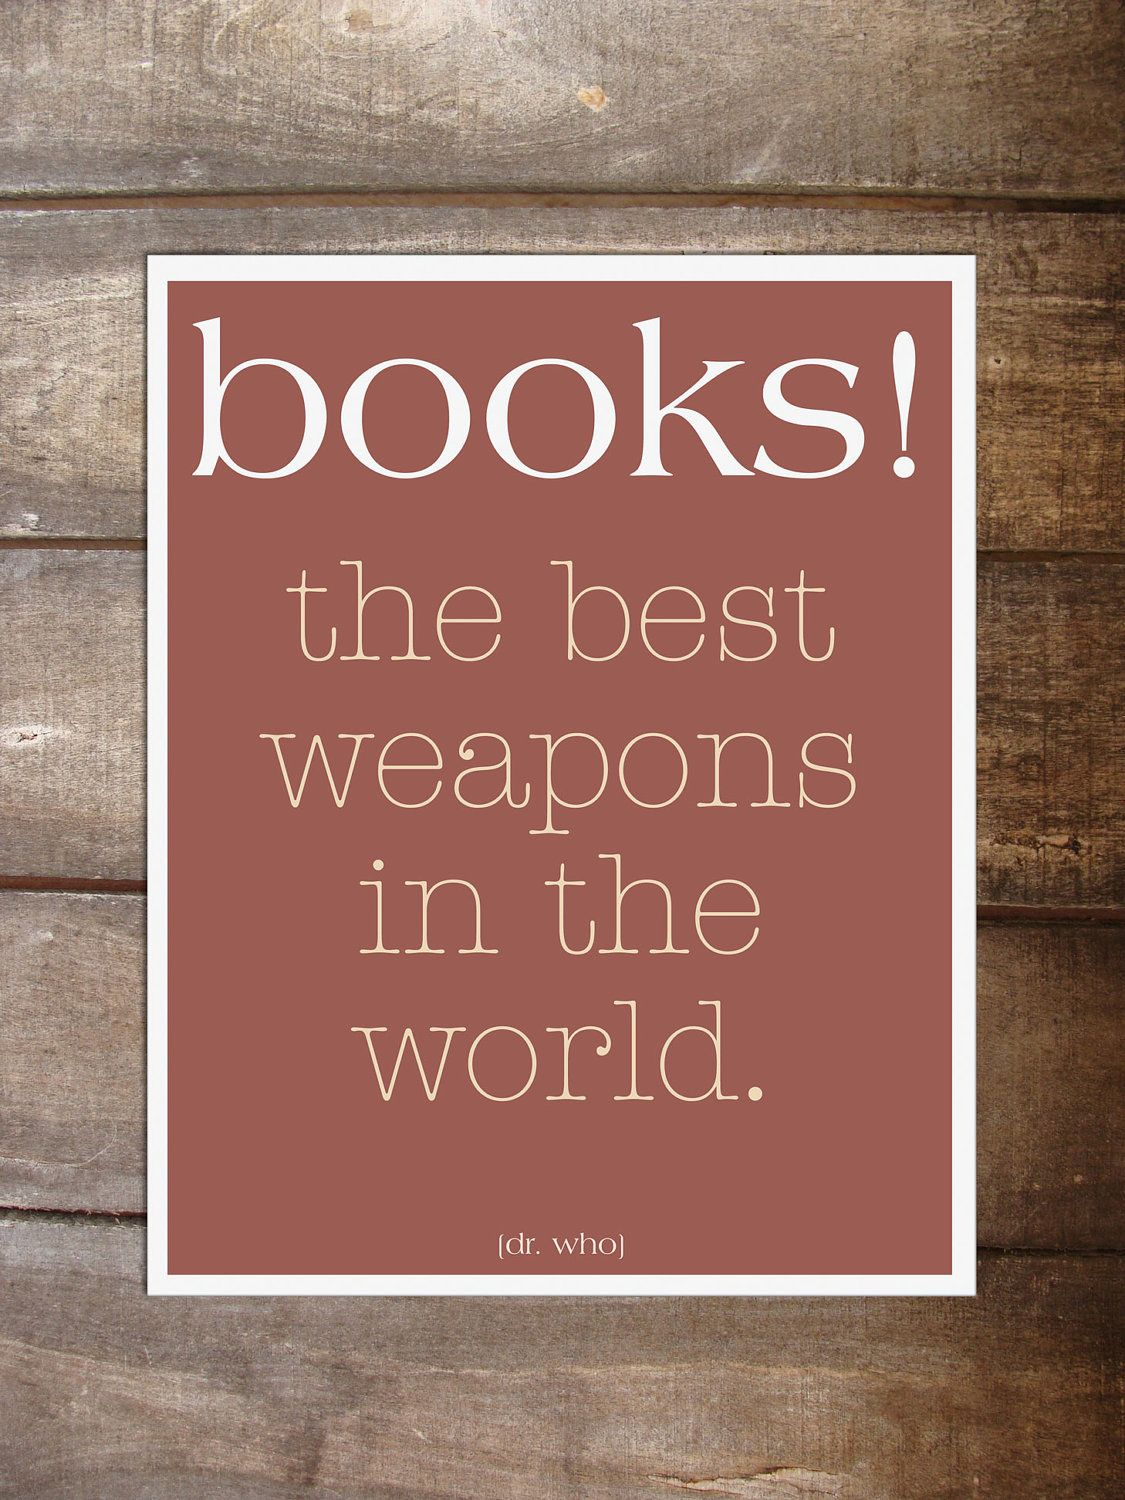 Doctor Who Quotes About Love Books The Best Weapons In The Worlddoctor Who Quote  A Good